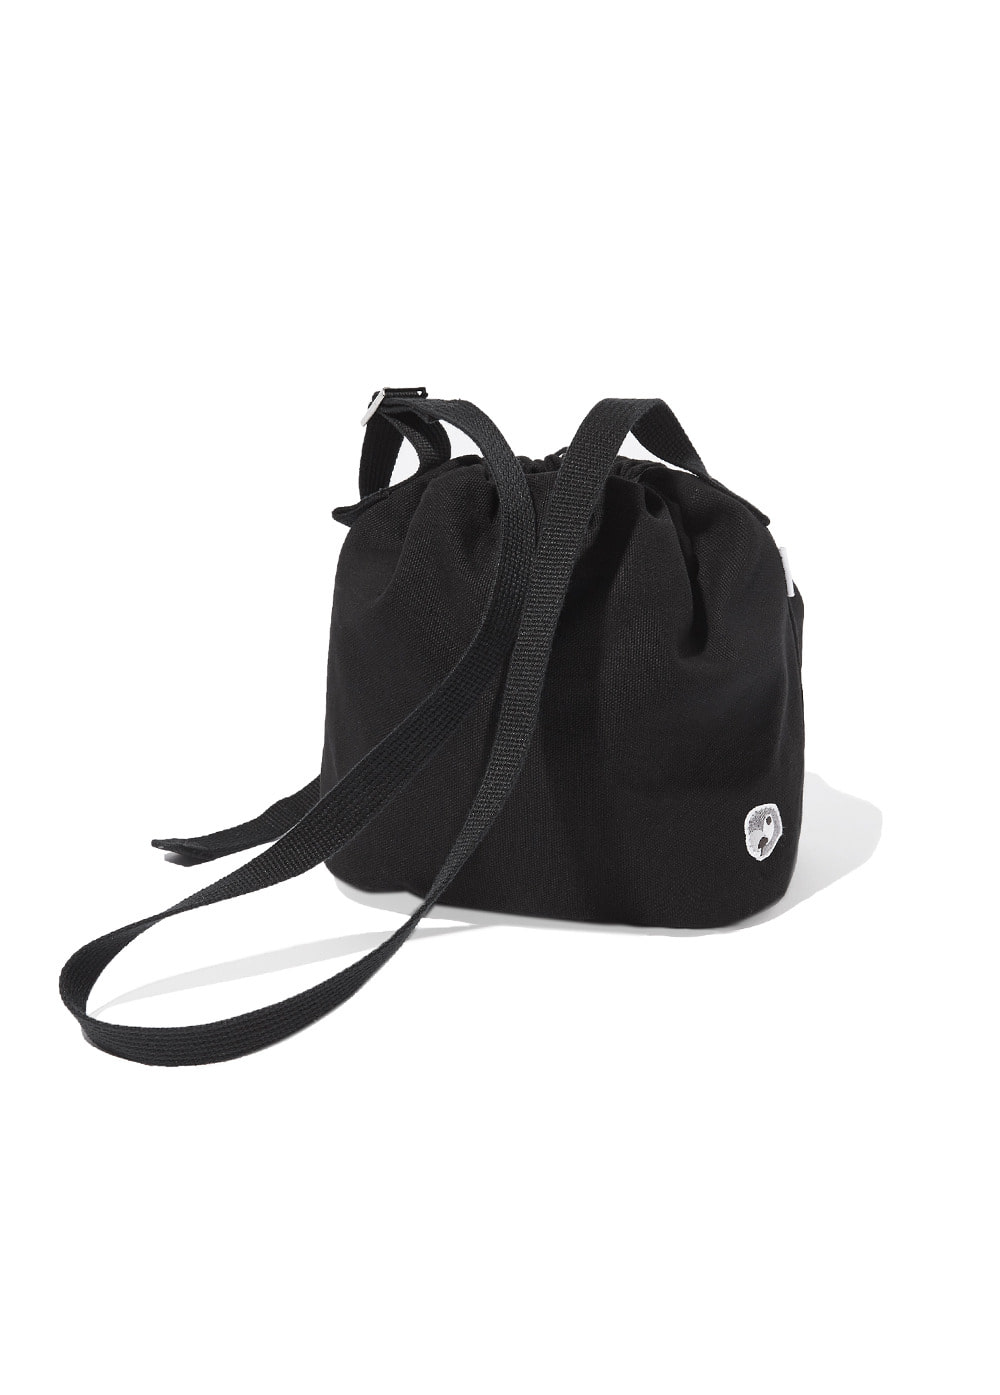 KANCO CANVAS CROSS BASKET BAG black